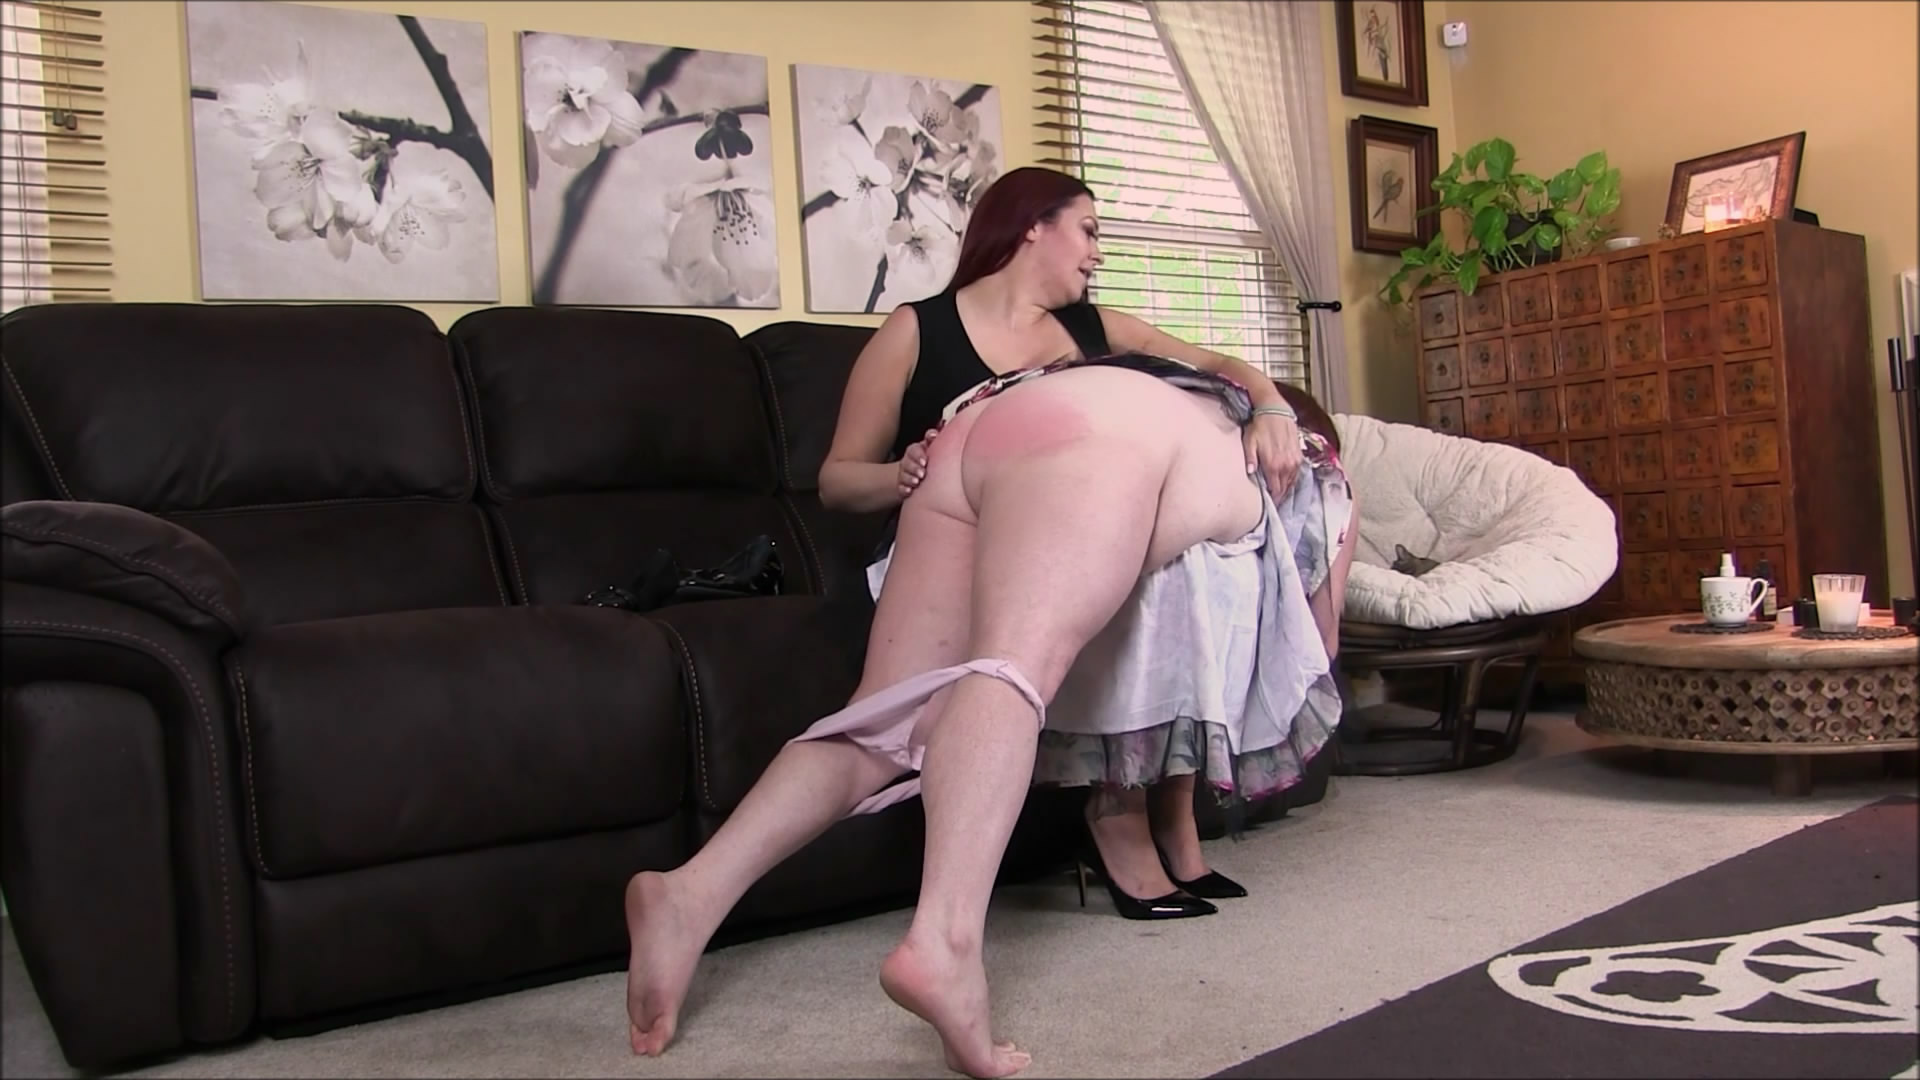 Punished Brats – MP4/Full HD – Mismatched Shoes Part 1 of 2